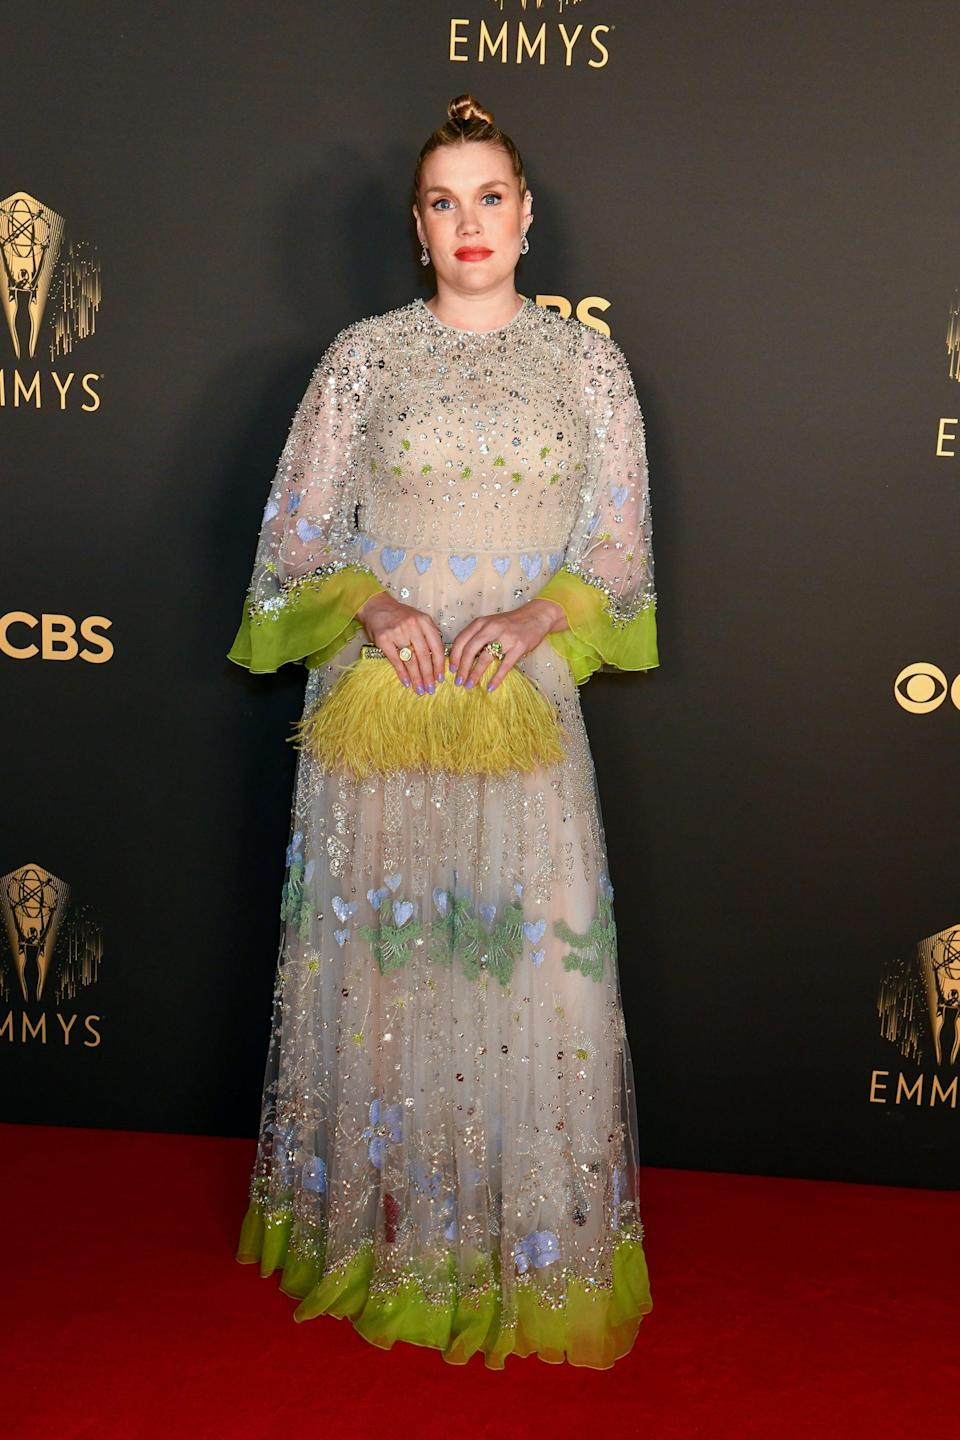 Emerald Fennell in Valentino<br><br><br><br><br>